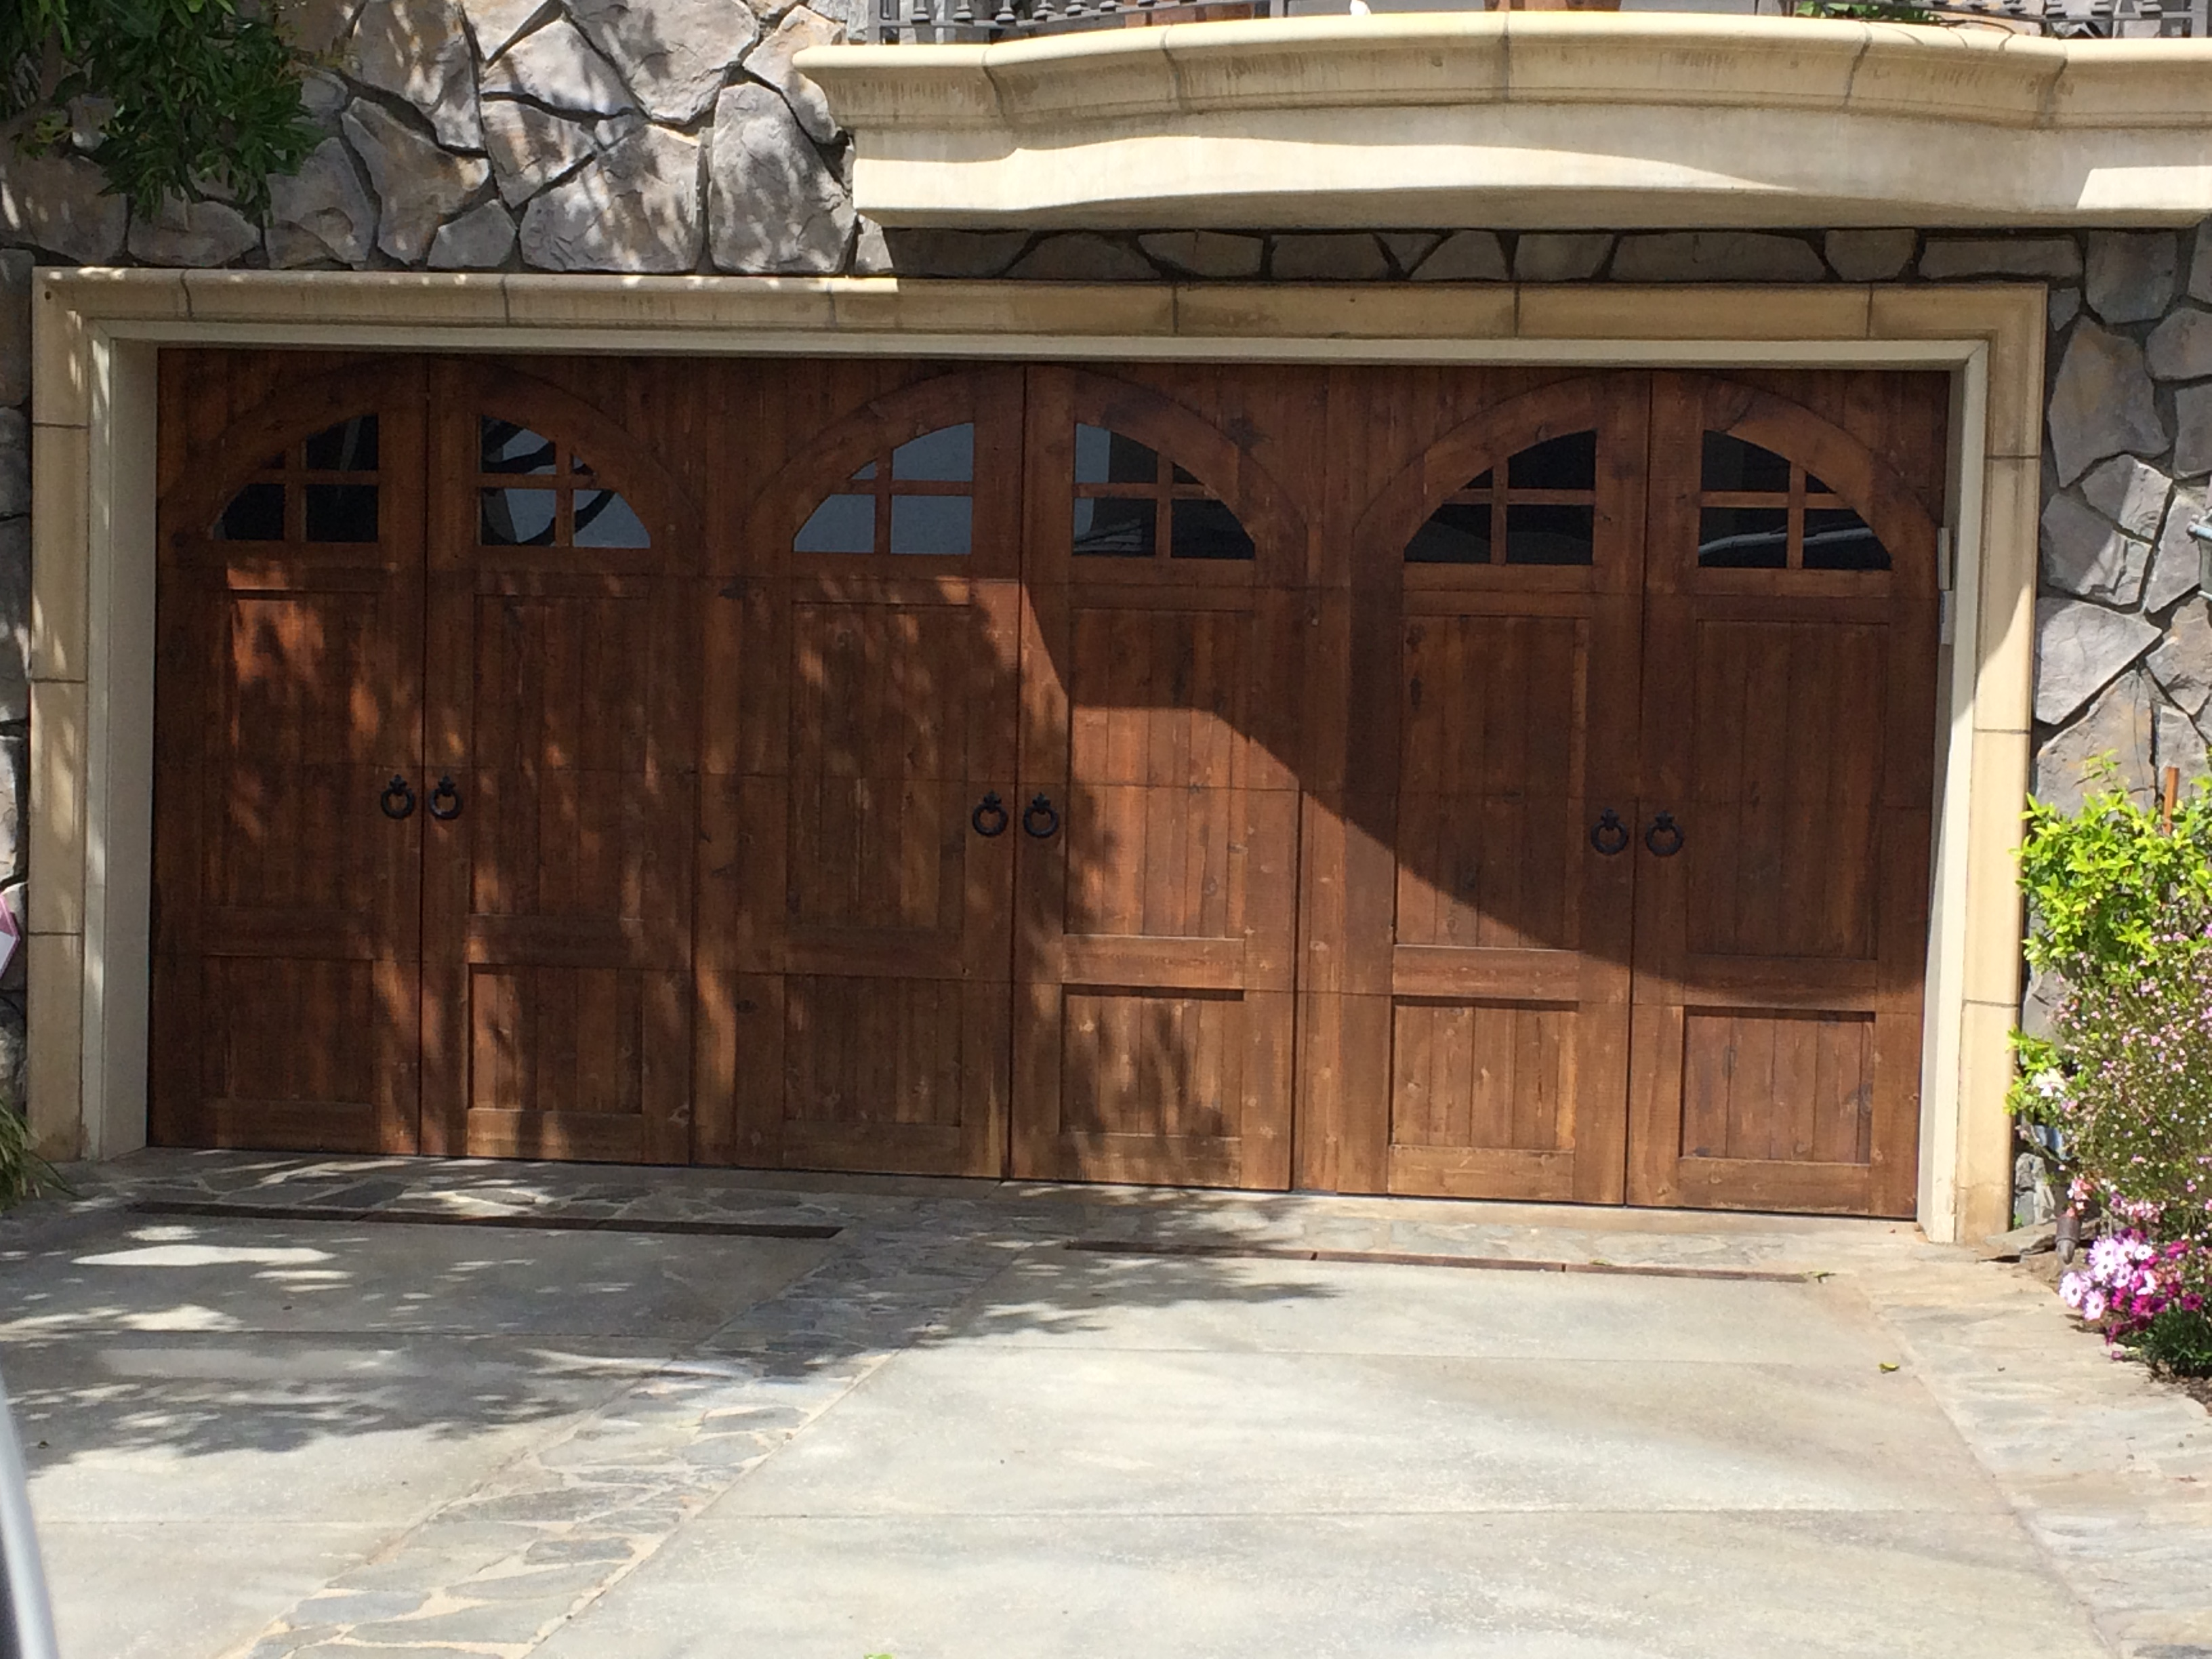 image canyon doors residential is andy photography door and exclusive photo overhead the company s r gallery this ridge protected united of clopay garage frame property